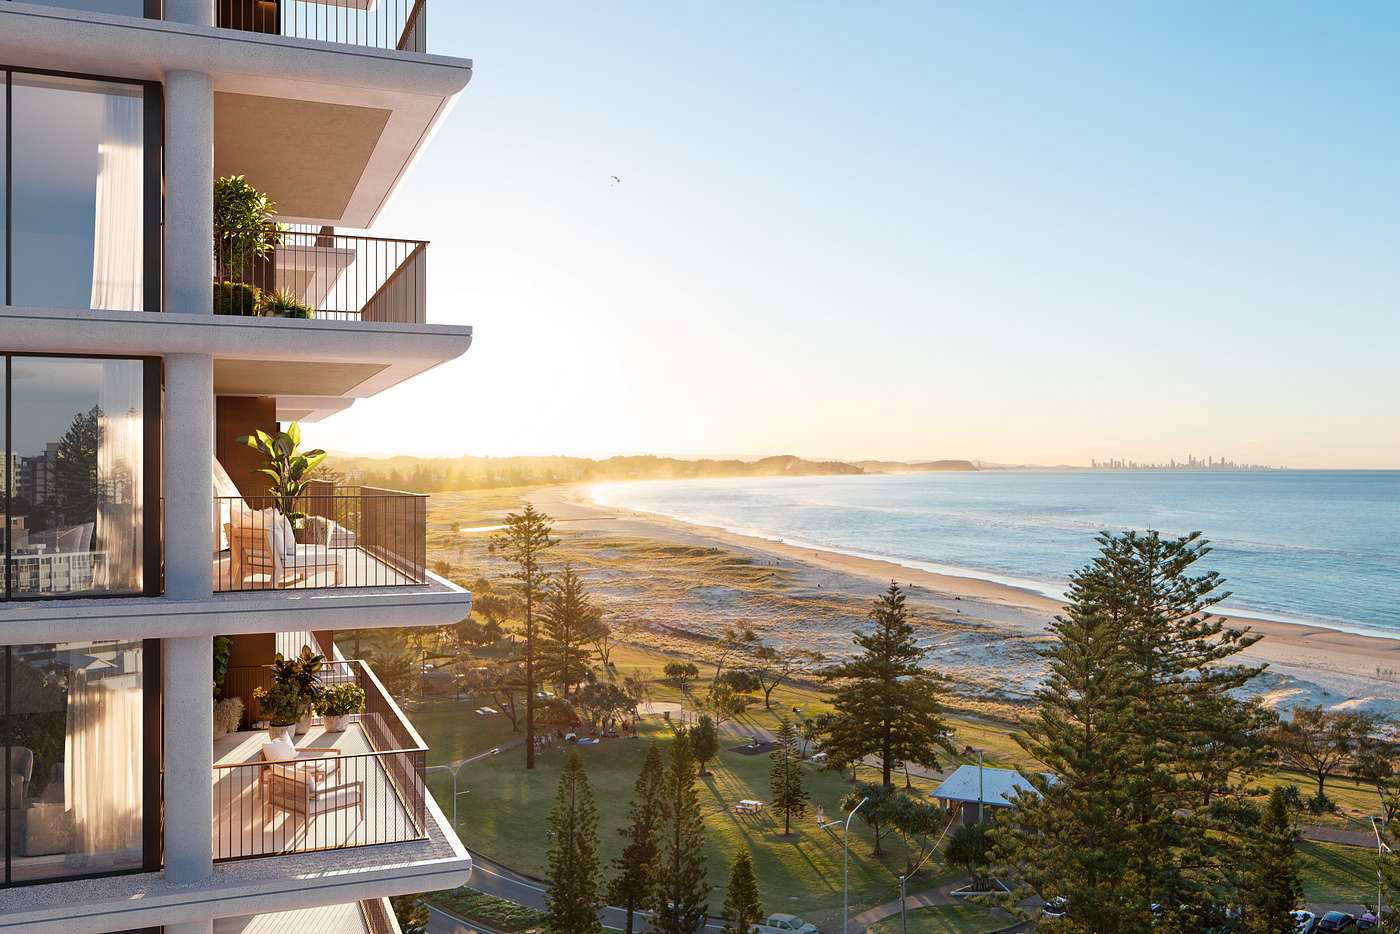 ▲ Artist impression of Emerson, the developer's 13-storey tower planned for Kirra's 100 Musgrave Street. Image: Rothelowman